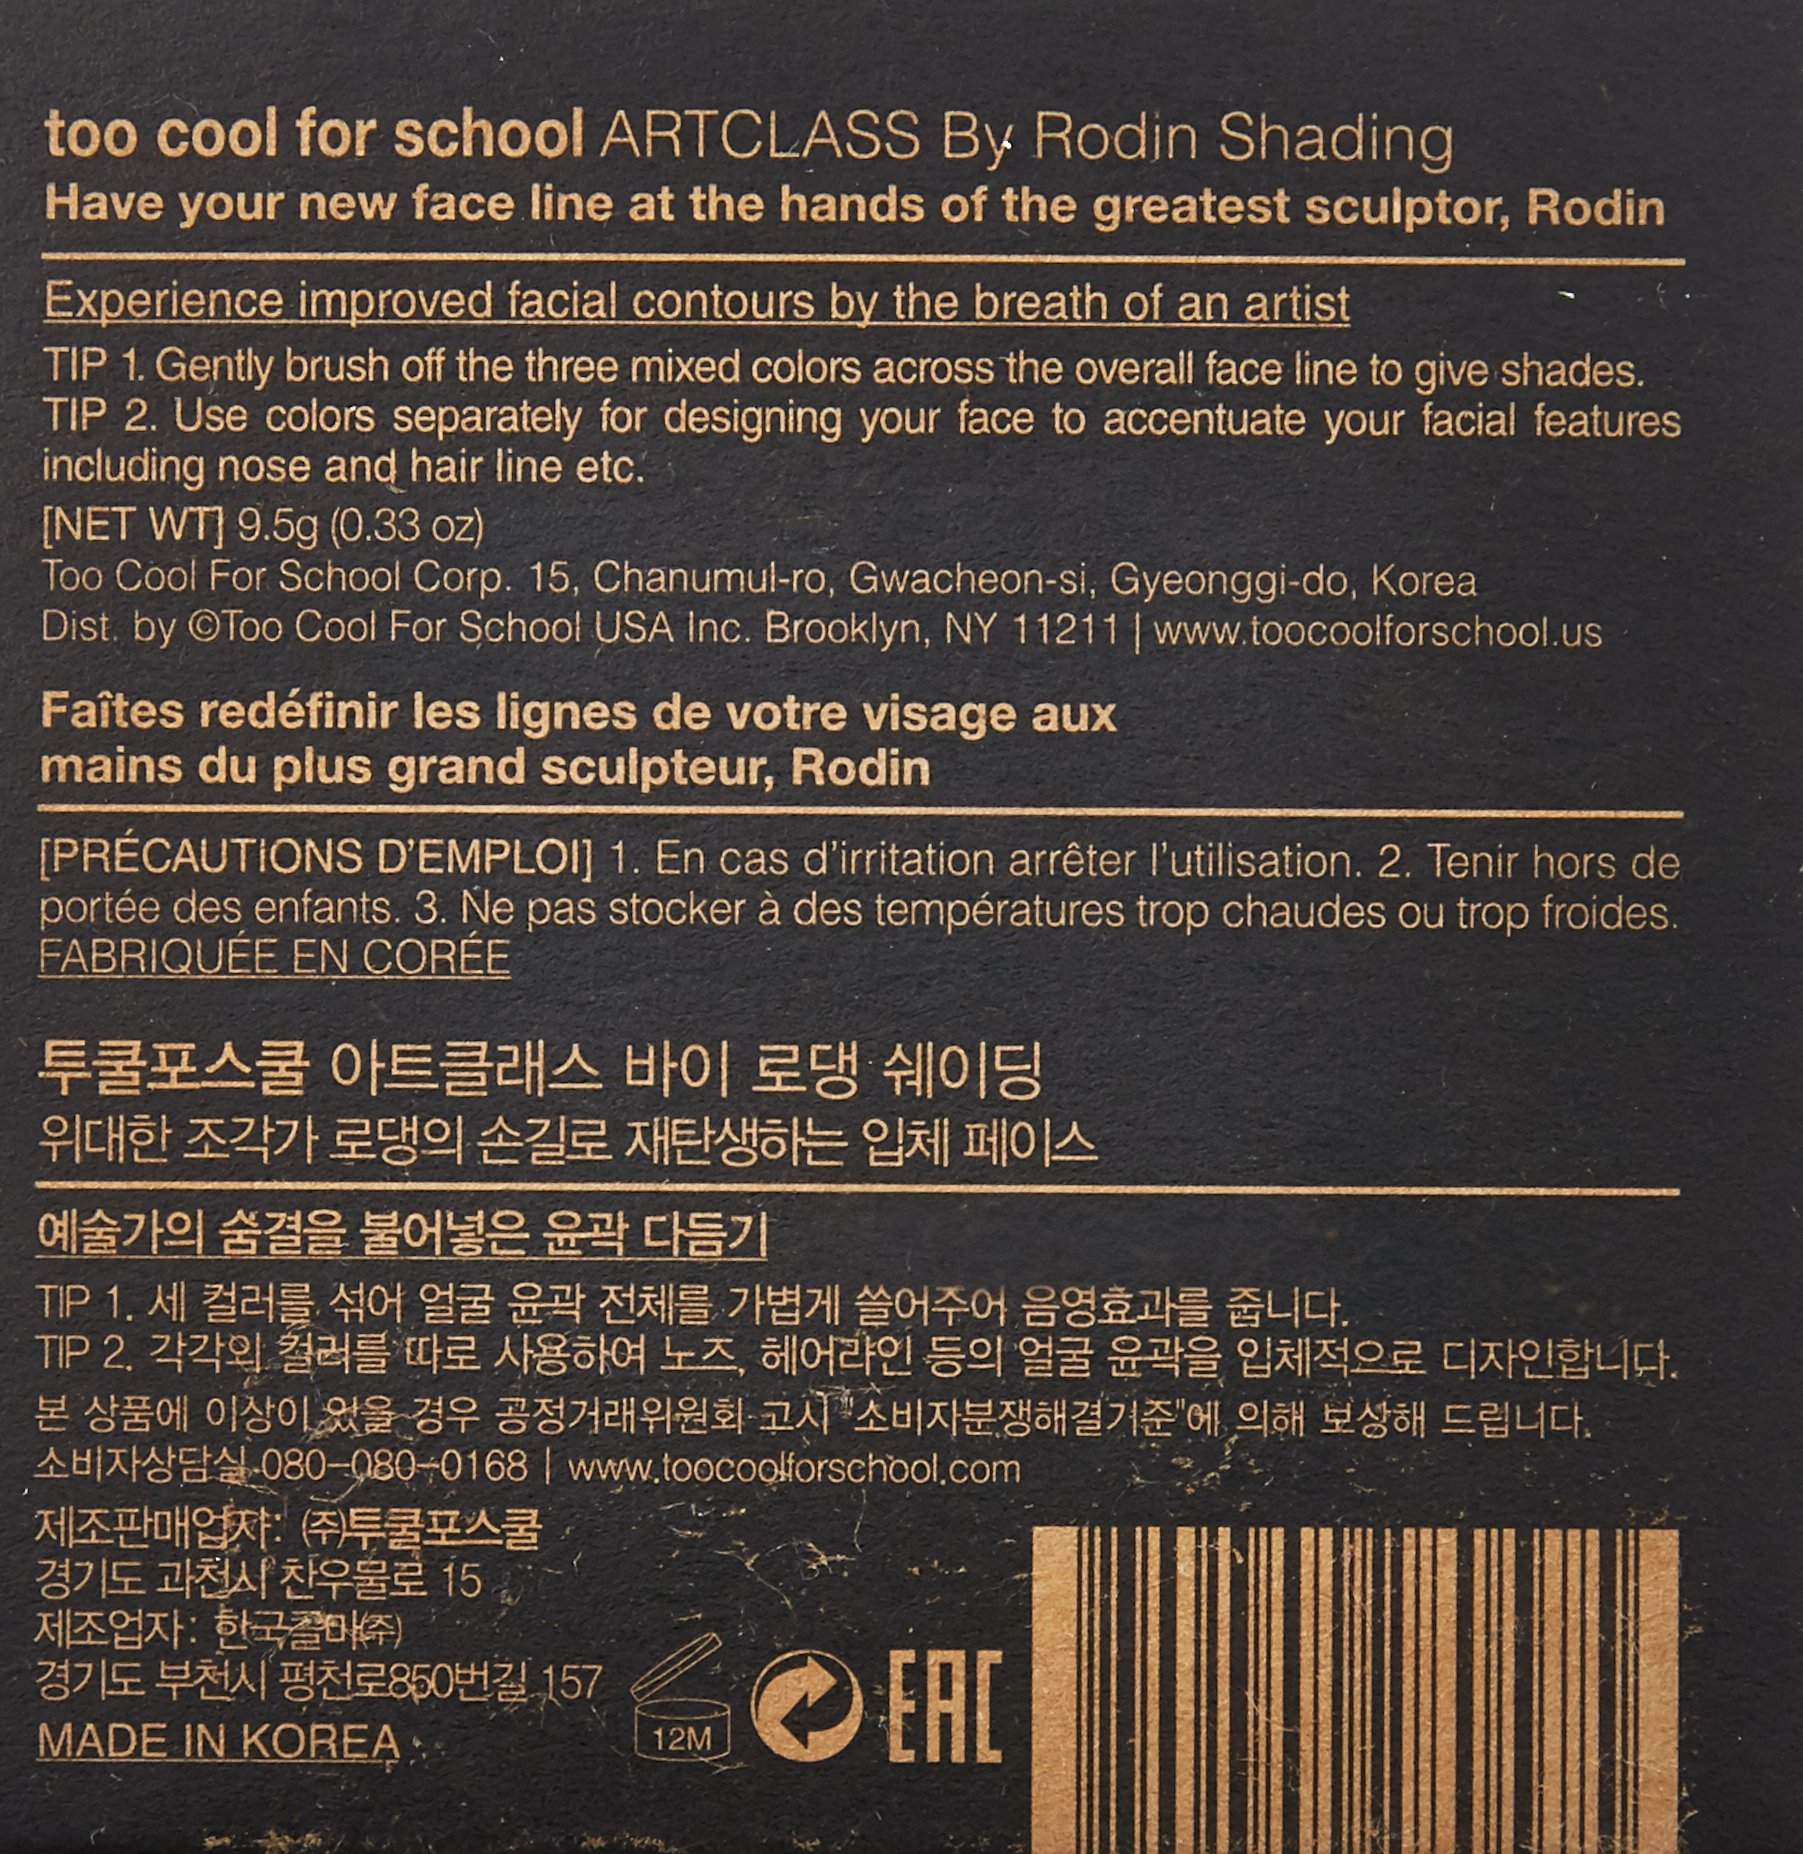 Too Cool For School by Roddin Face Blush, 0.335 Ounce by too cool for school (Image #2)